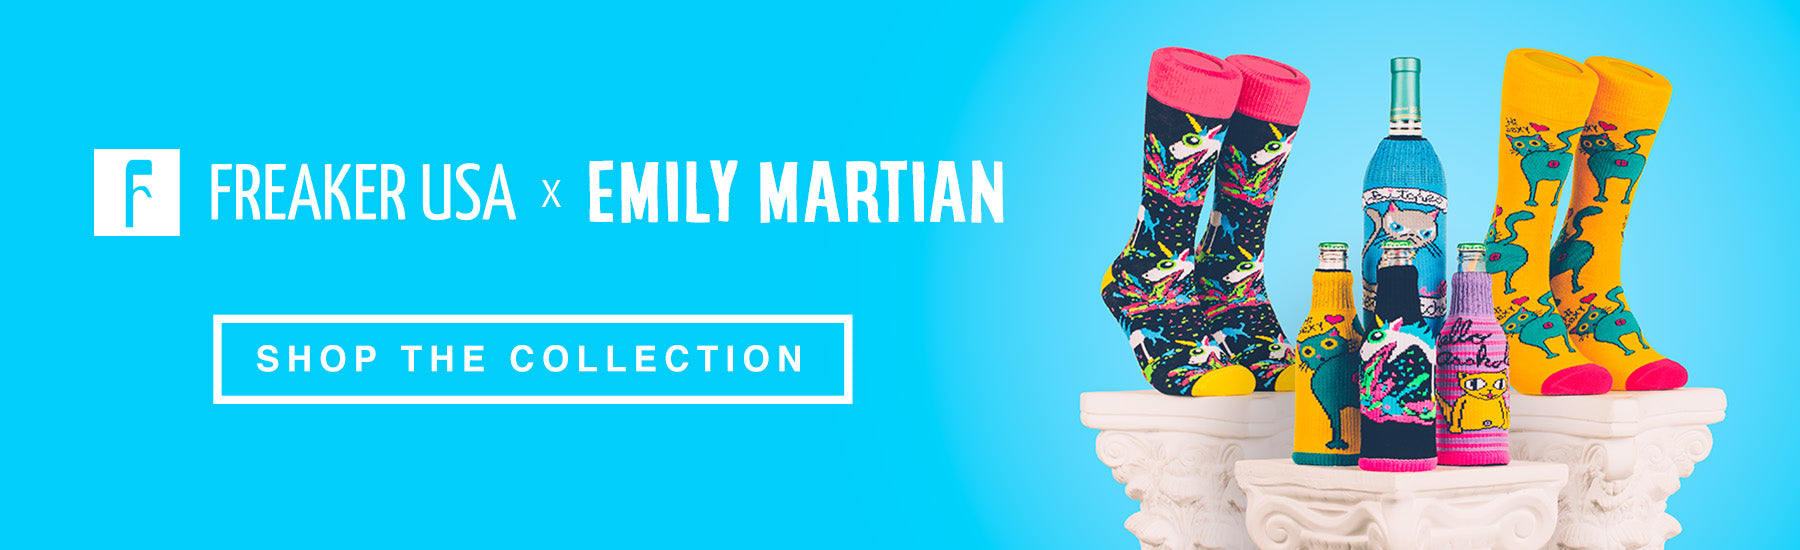 Shop our EMILY MARTIAN collection